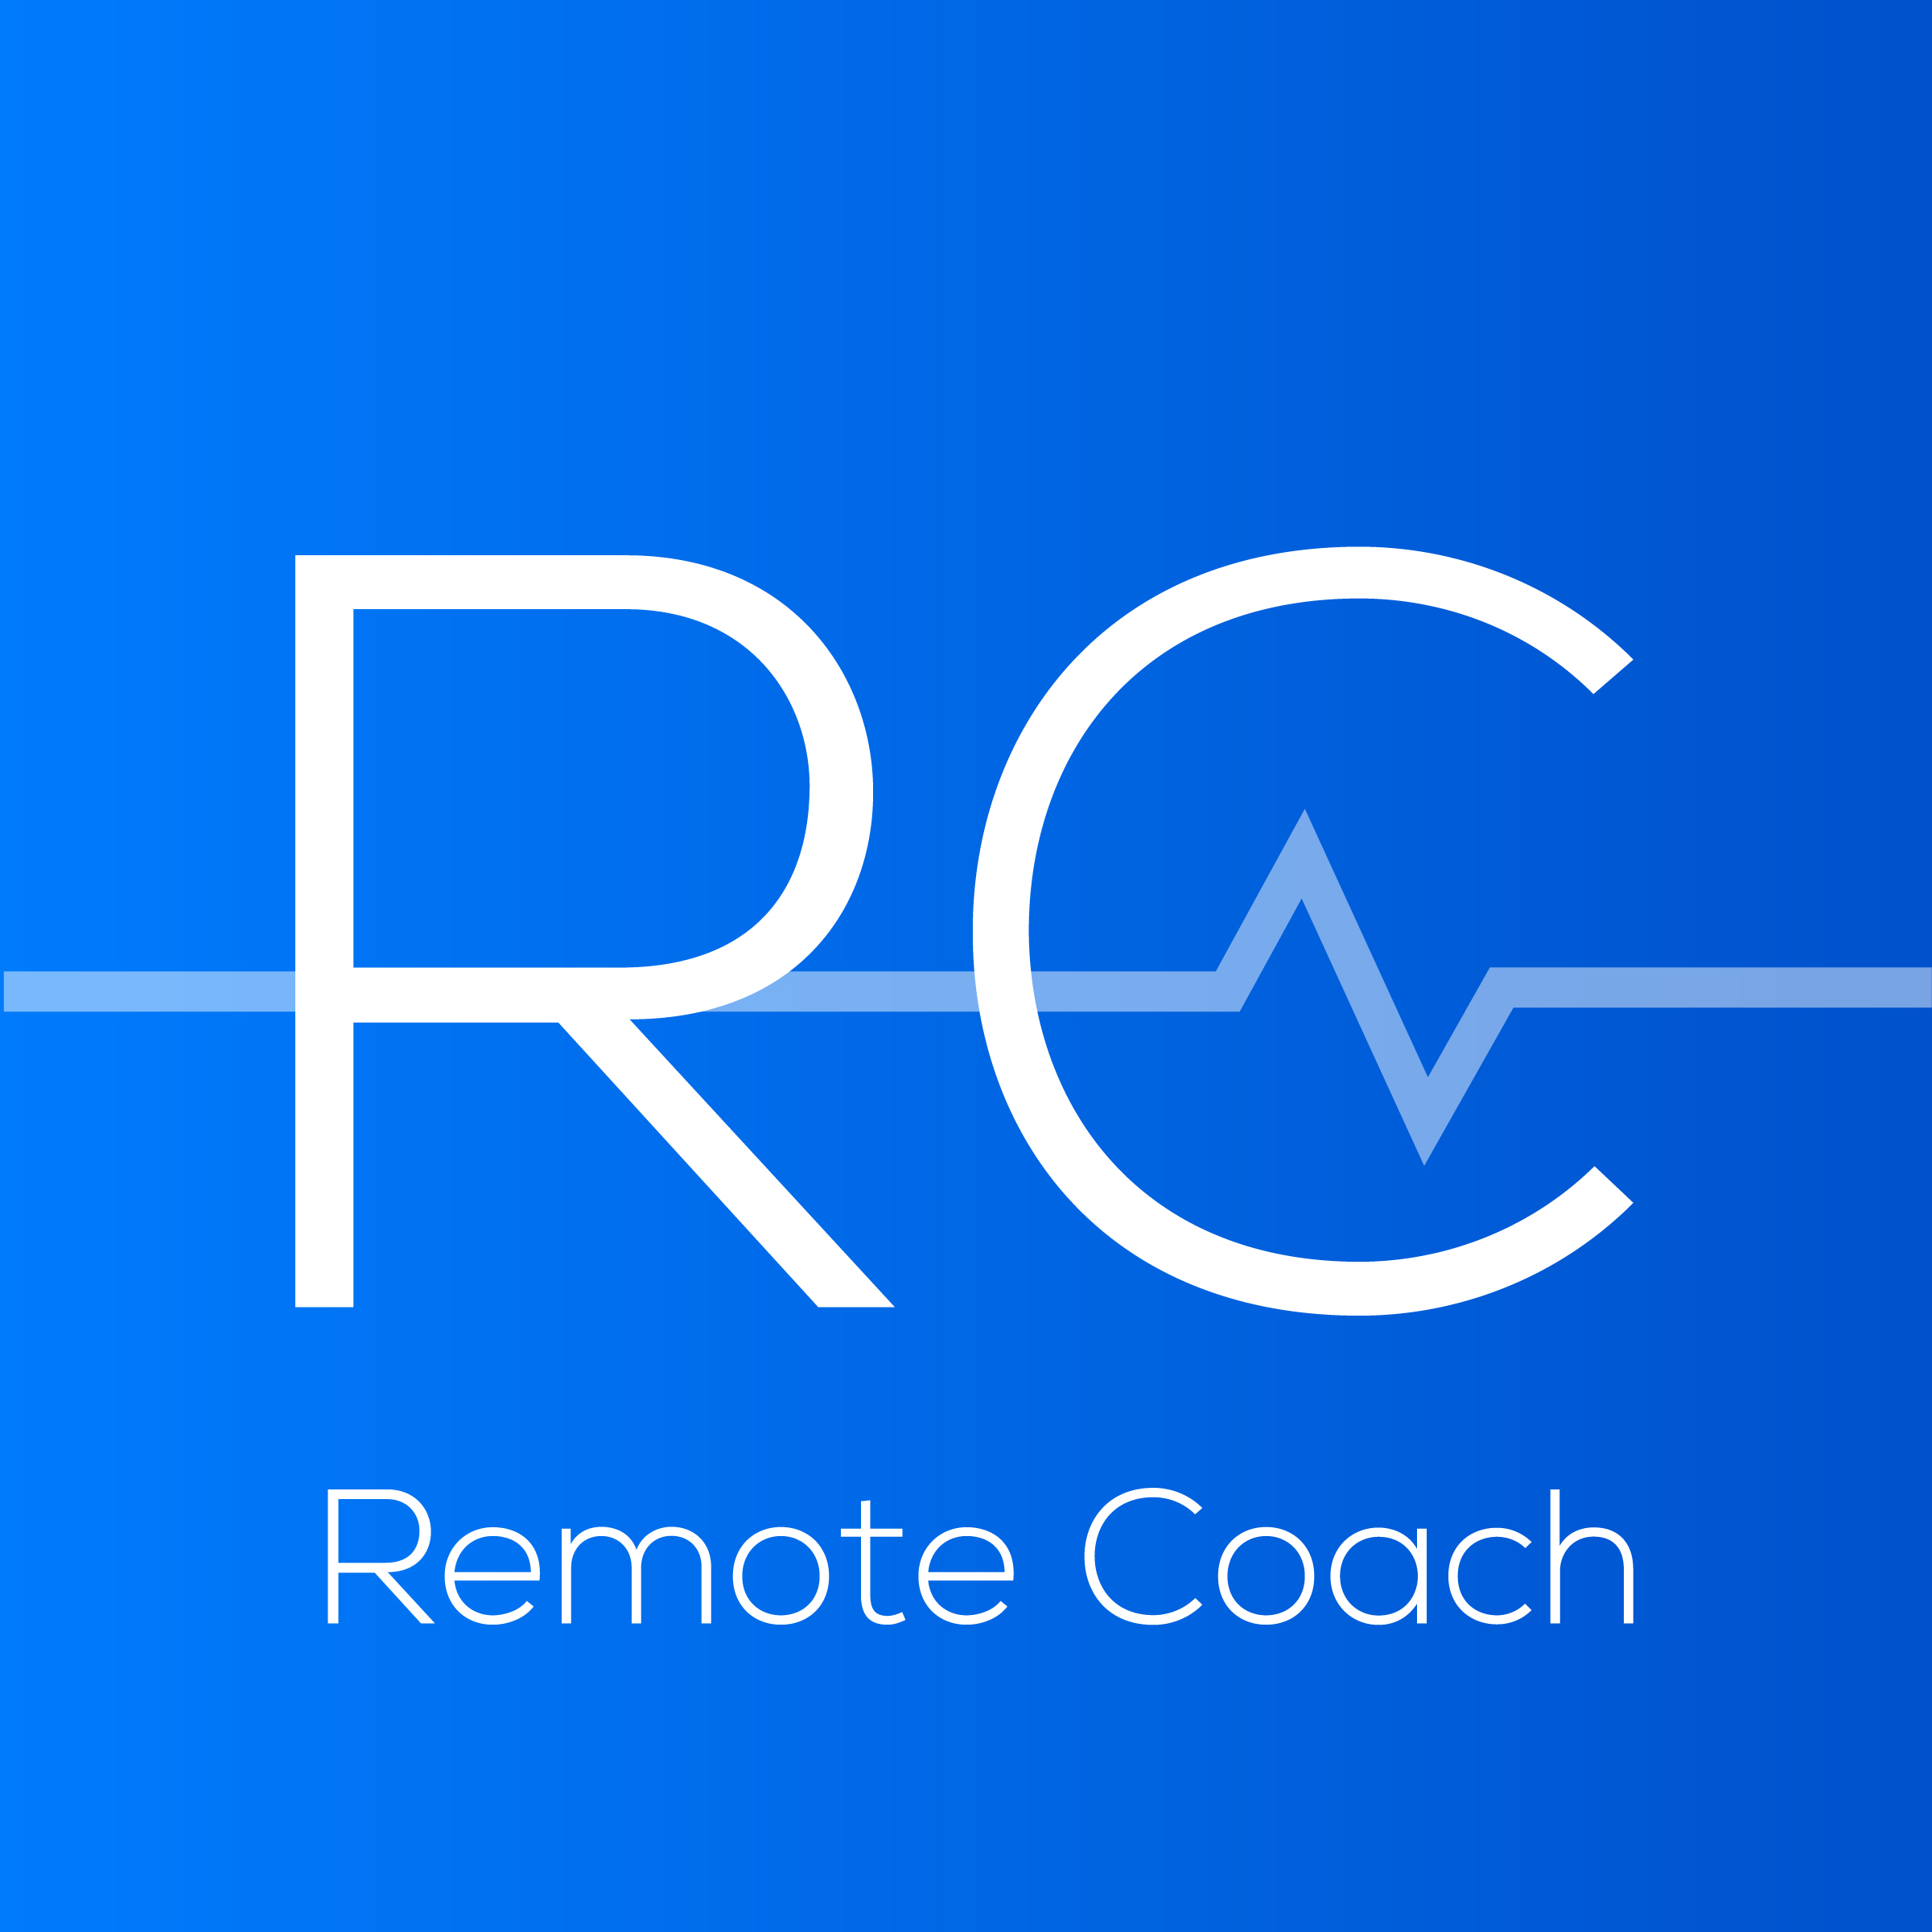 Remote Coach Help Center home page